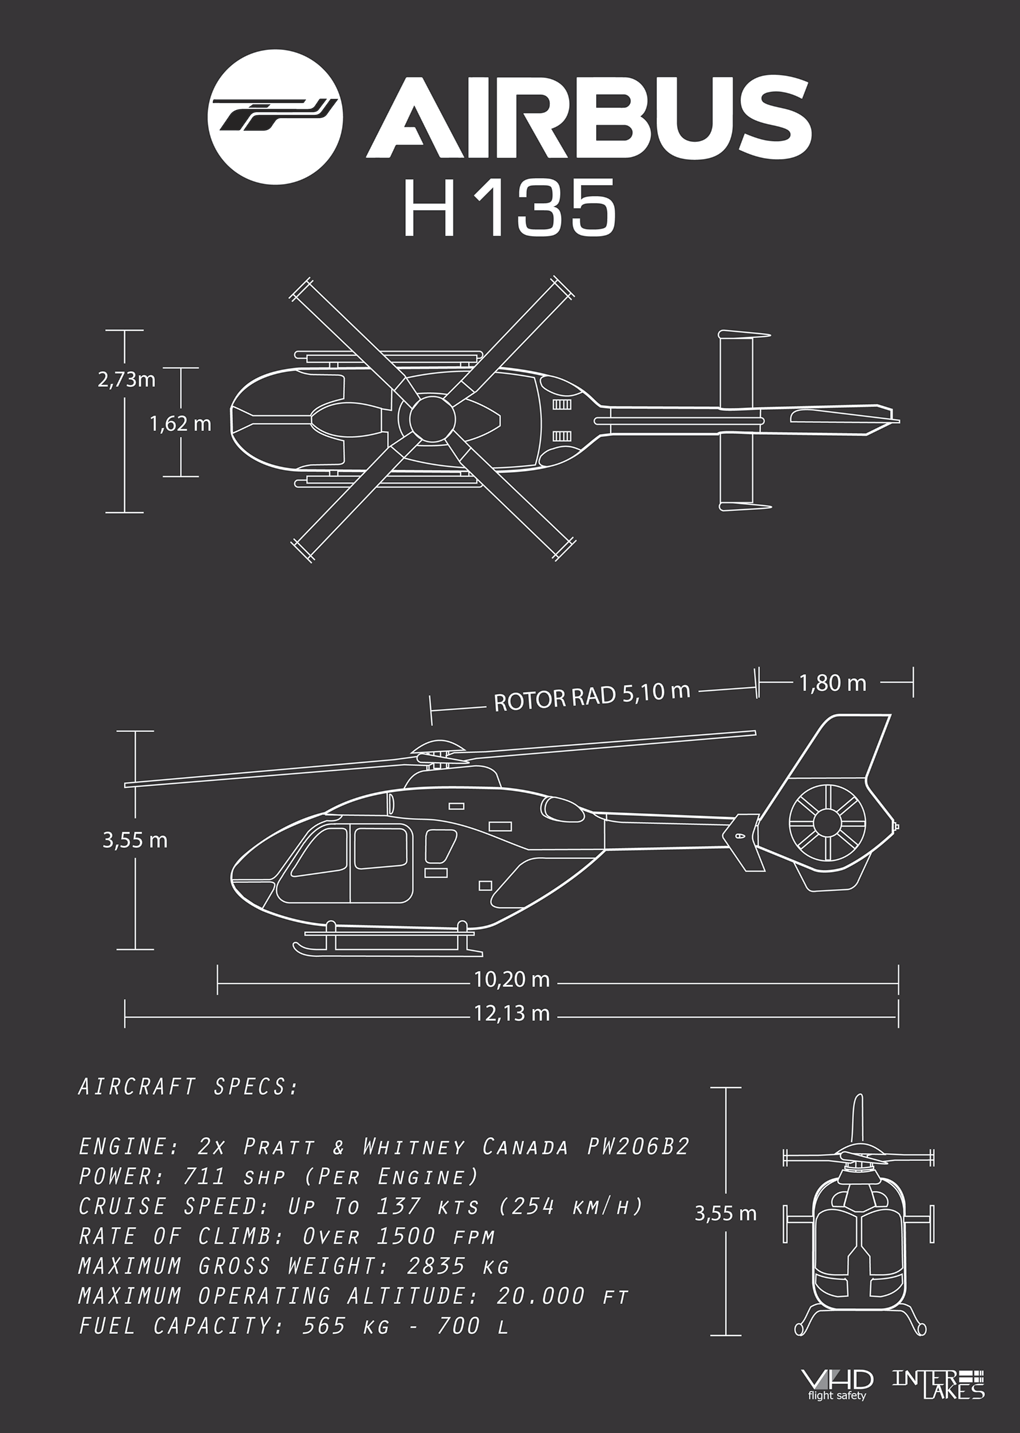 EUROCOPTER AIRBUS H135